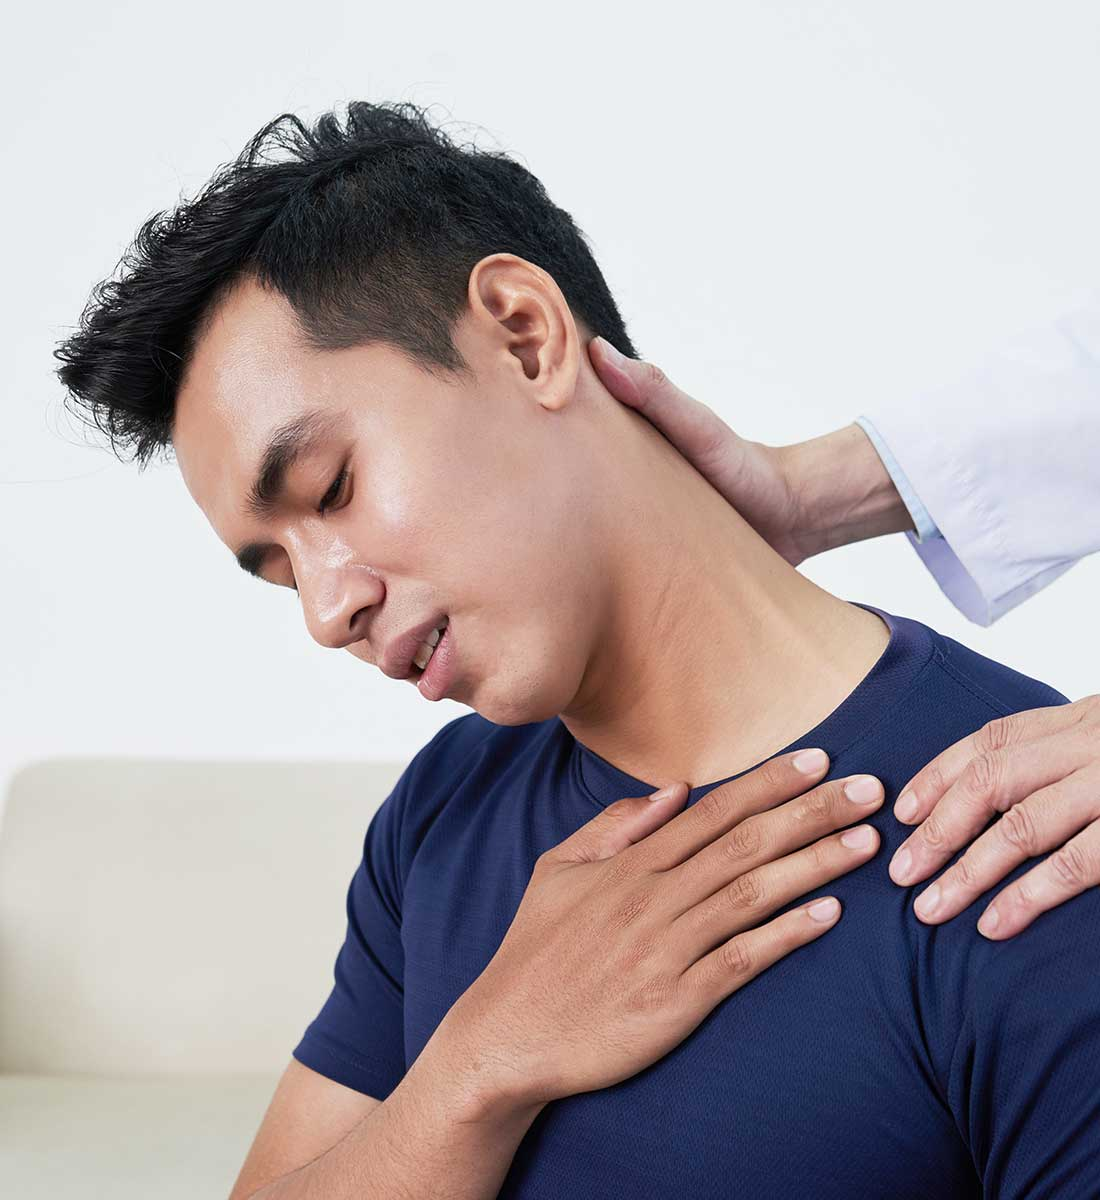 Patient Suffering From Neck Pain